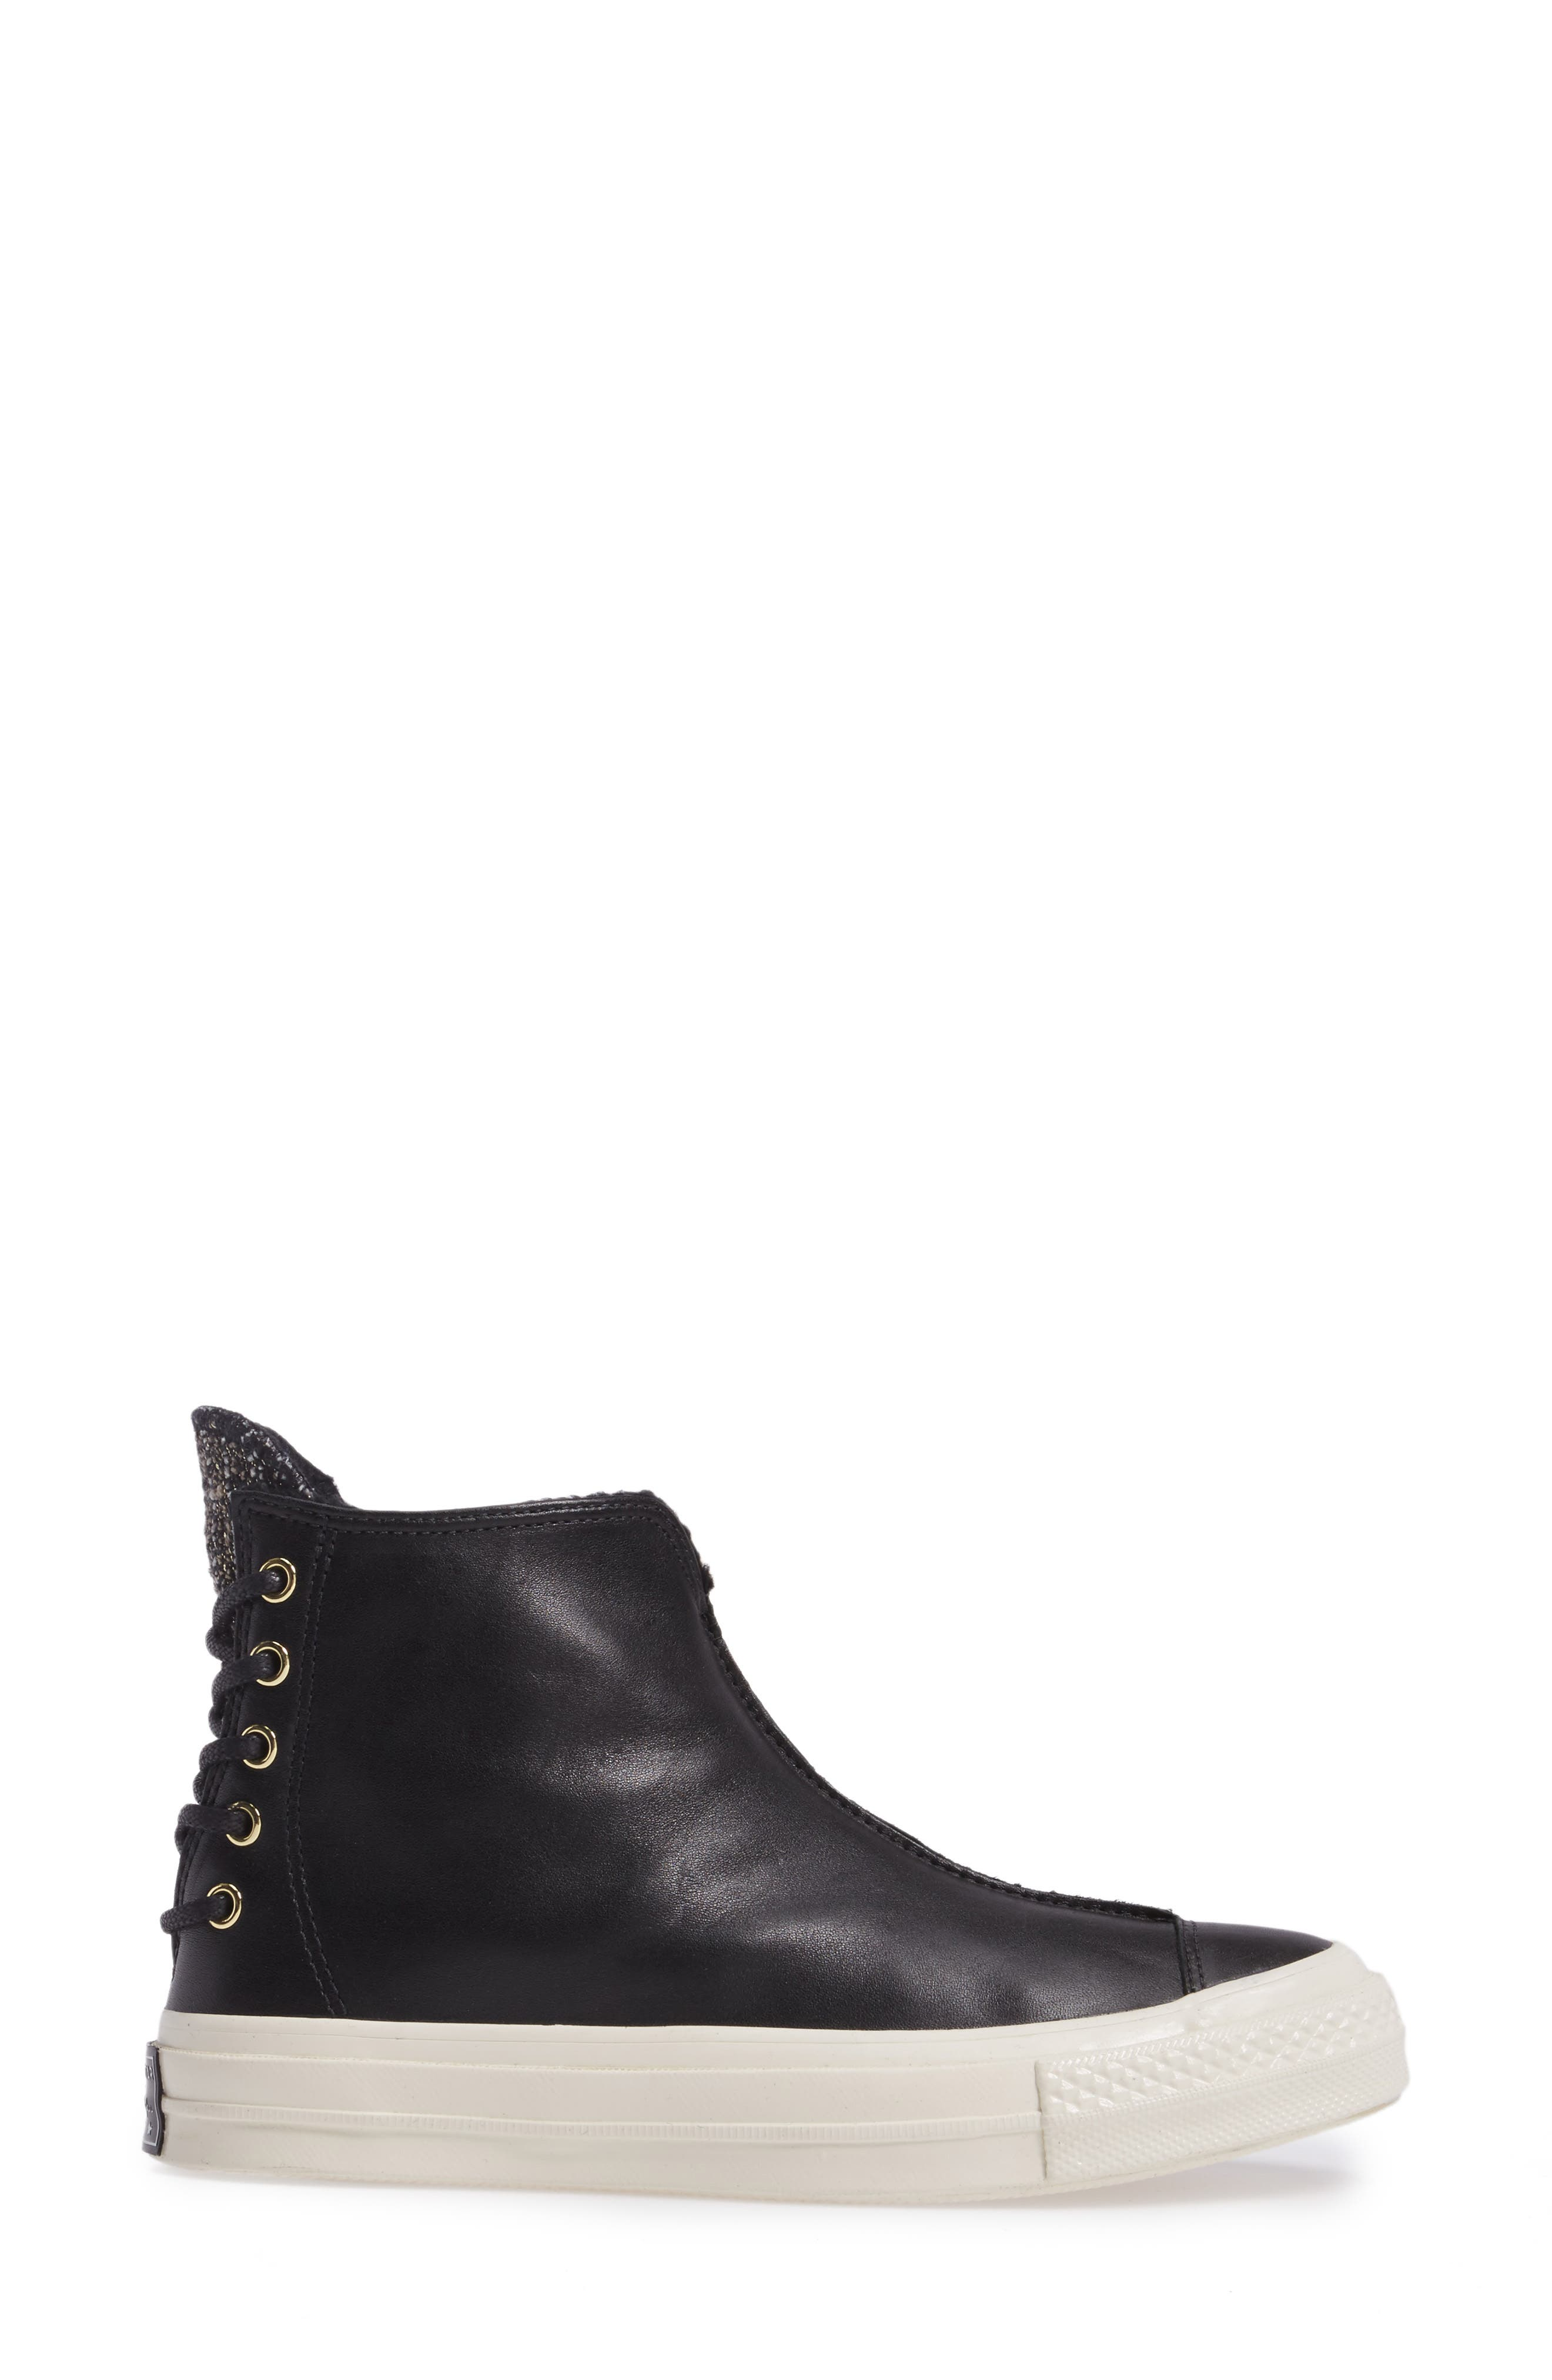 Chuck Taylor<sup>®</sup> All Star<sup>®</sup> Chuck 70 Punk Sneaker Boot,                             Alternate thumbnail 3, color,                             Black Leather